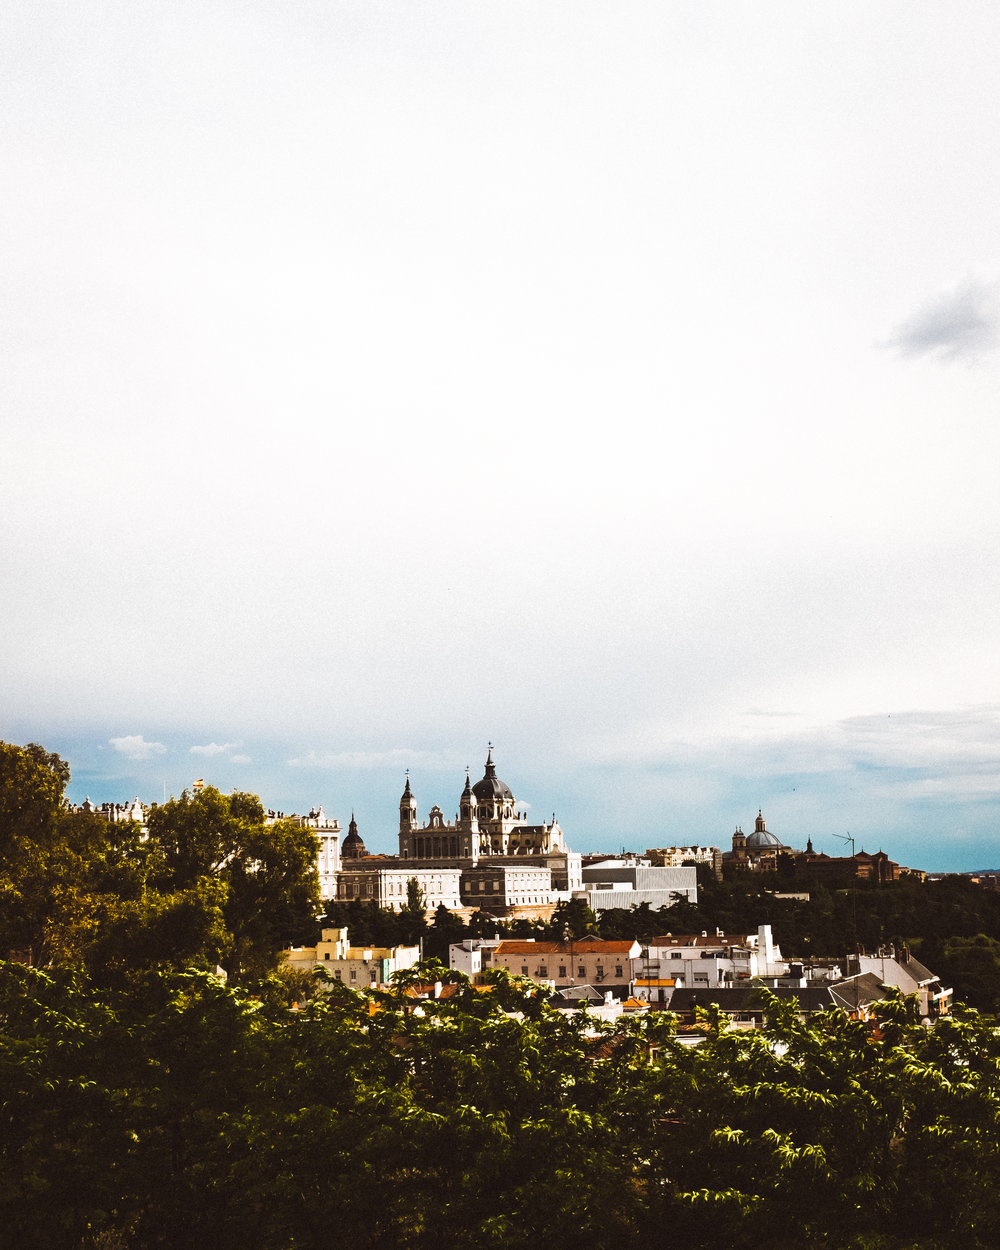 View over the Royal Palace